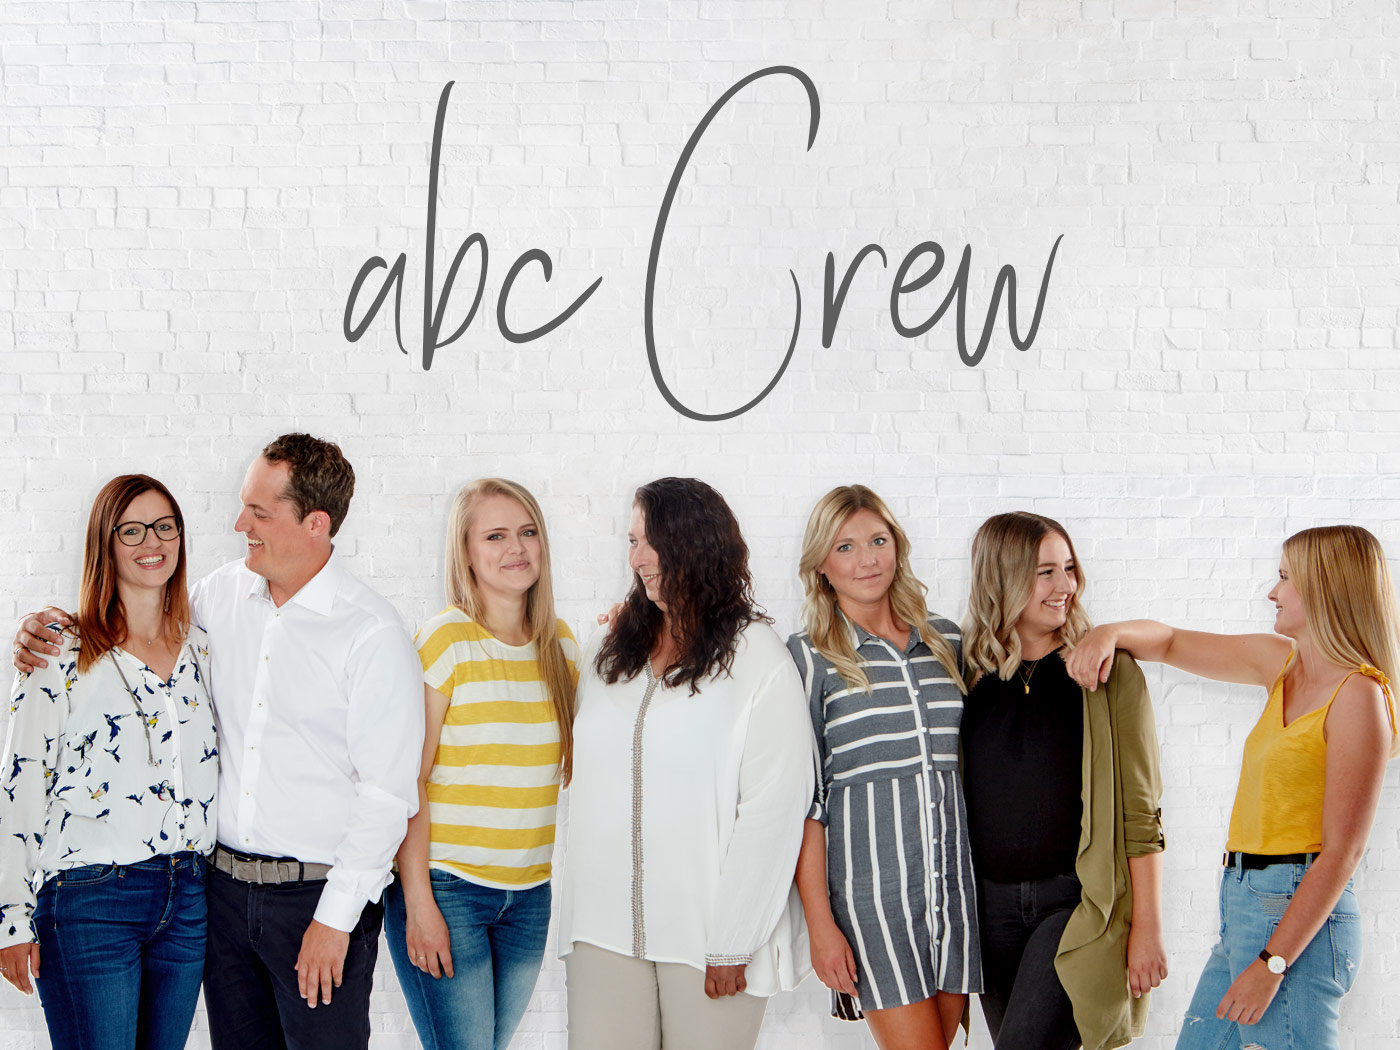 abc Crew – Teamfoto